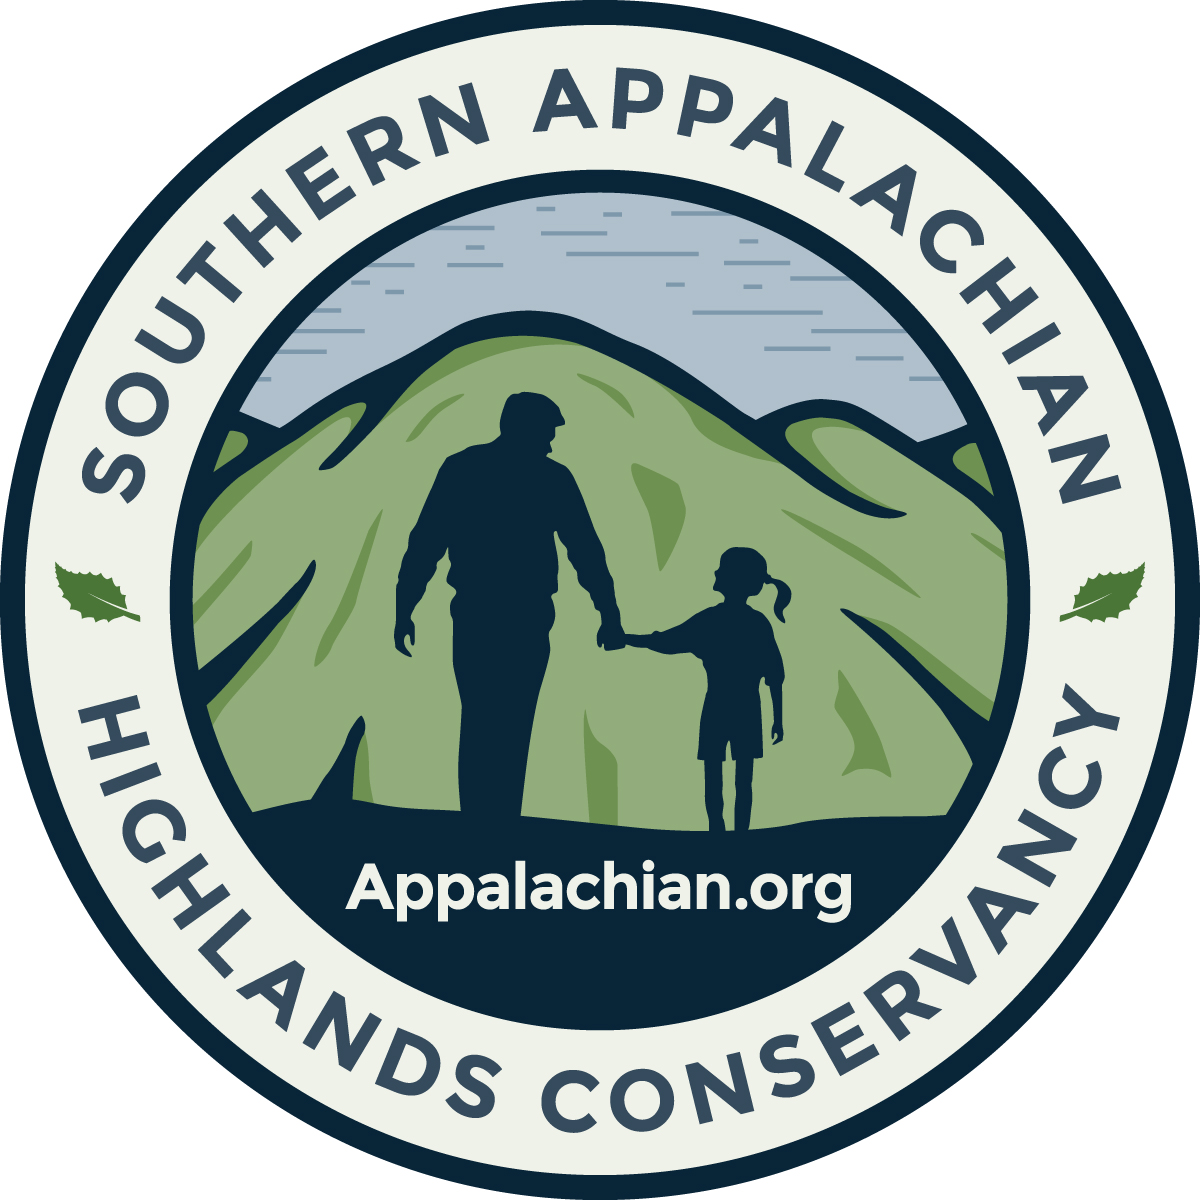 Southern Appalachian Highlands Conservancy